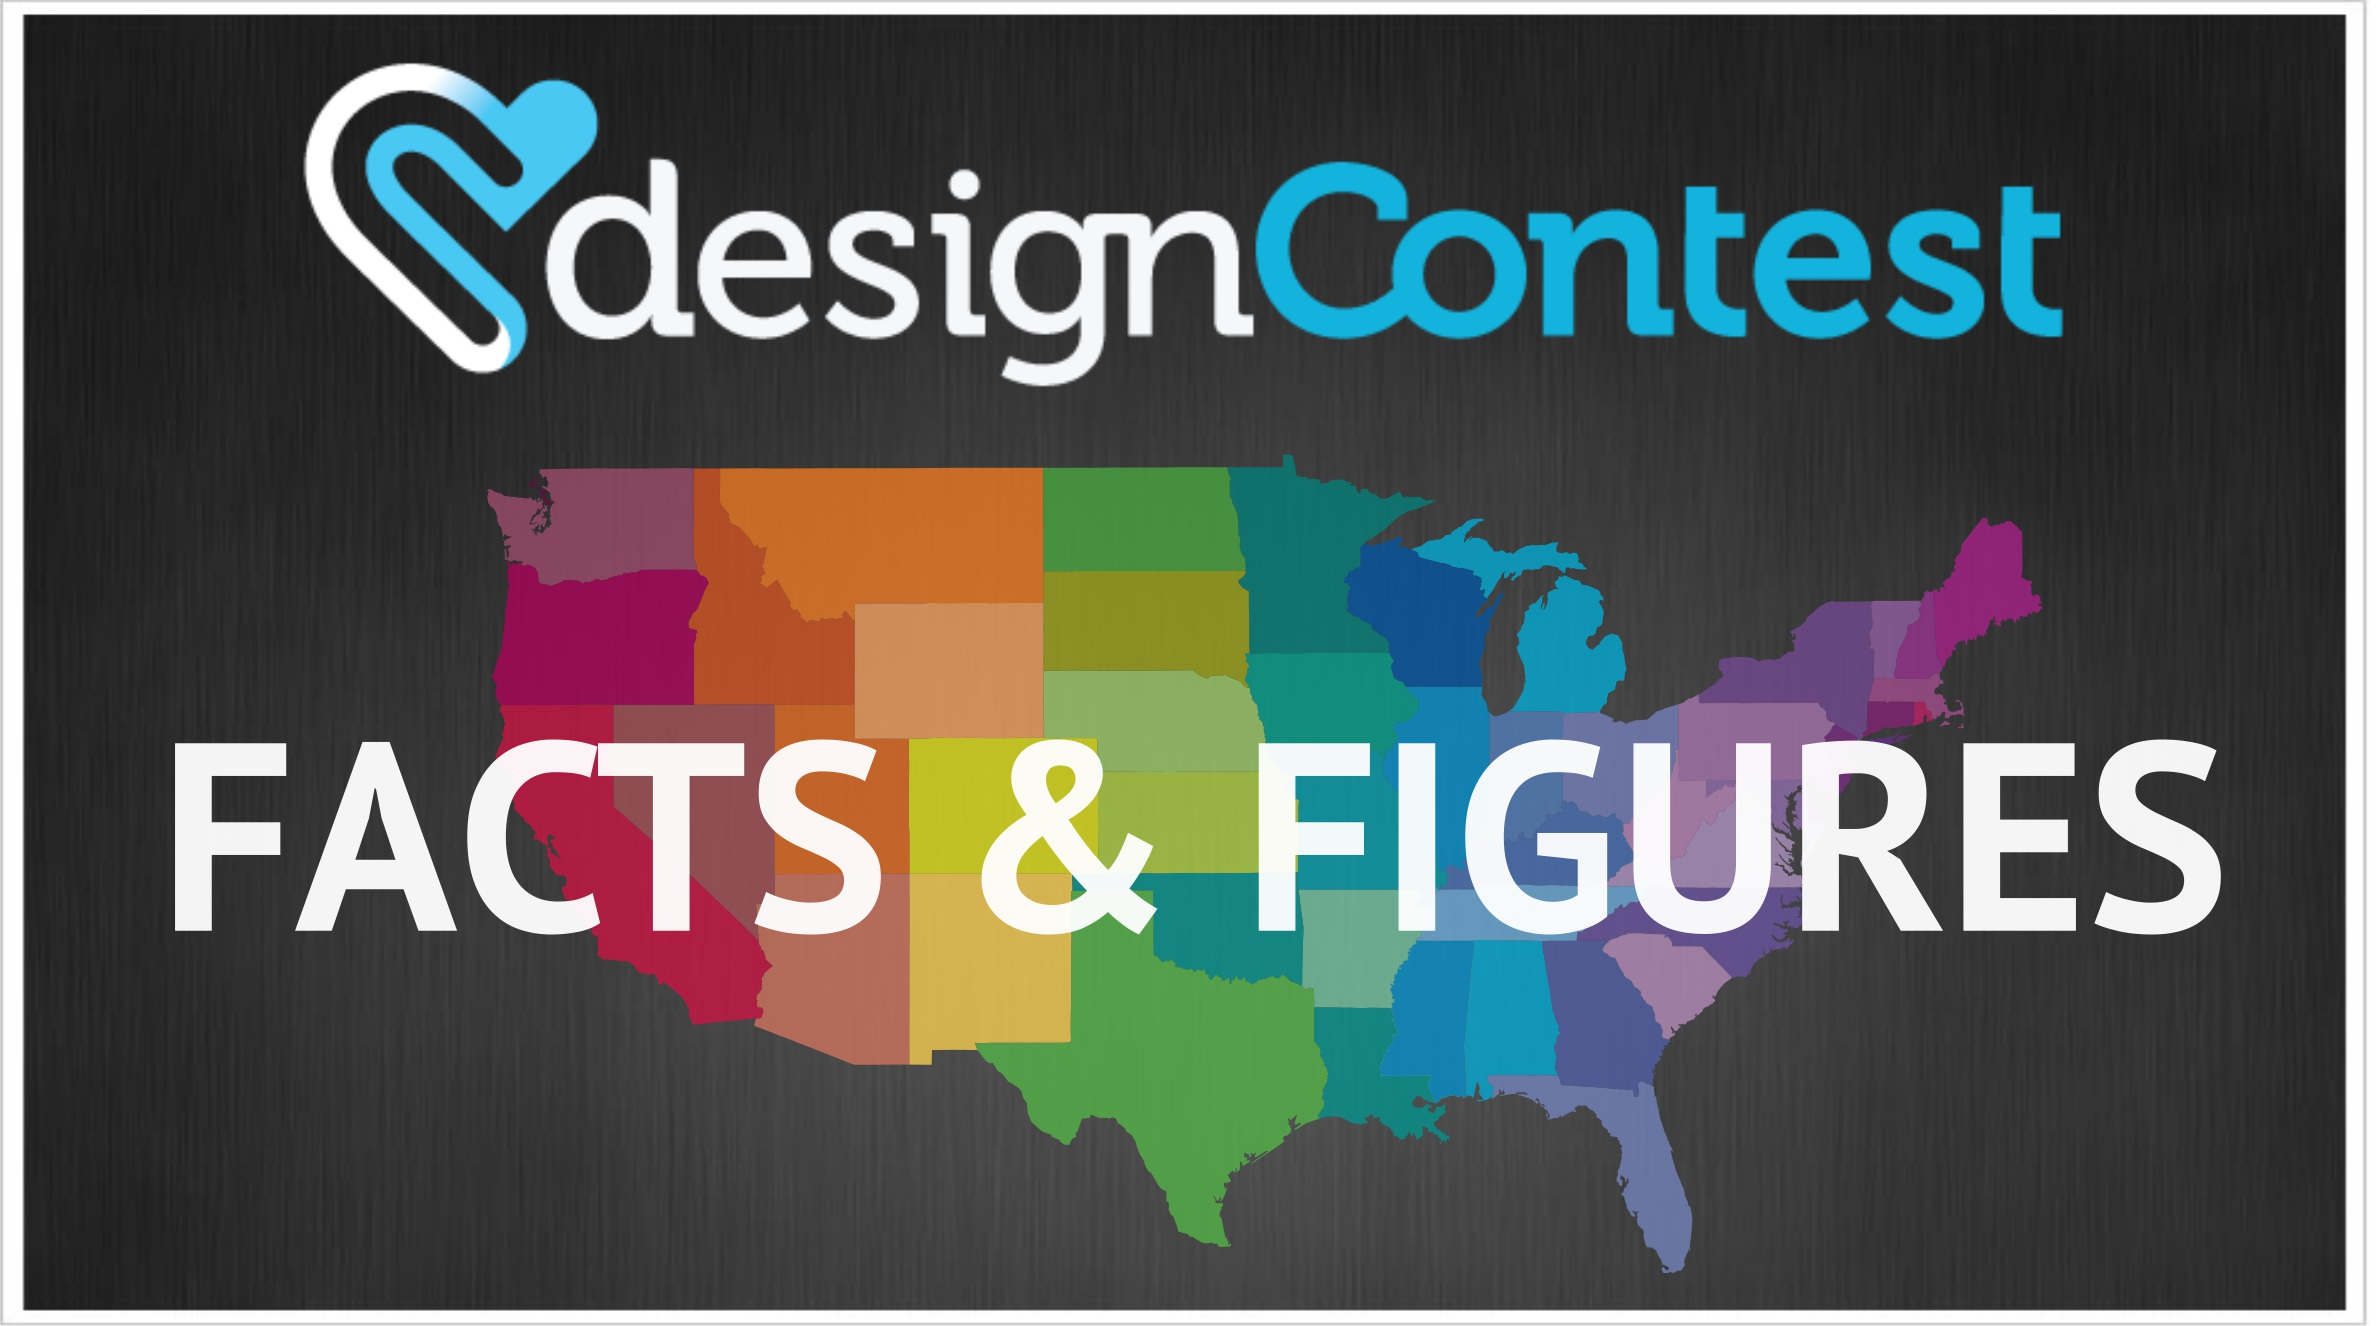 DESIGNCONTEST IN 2014: FACTS & FIGURES